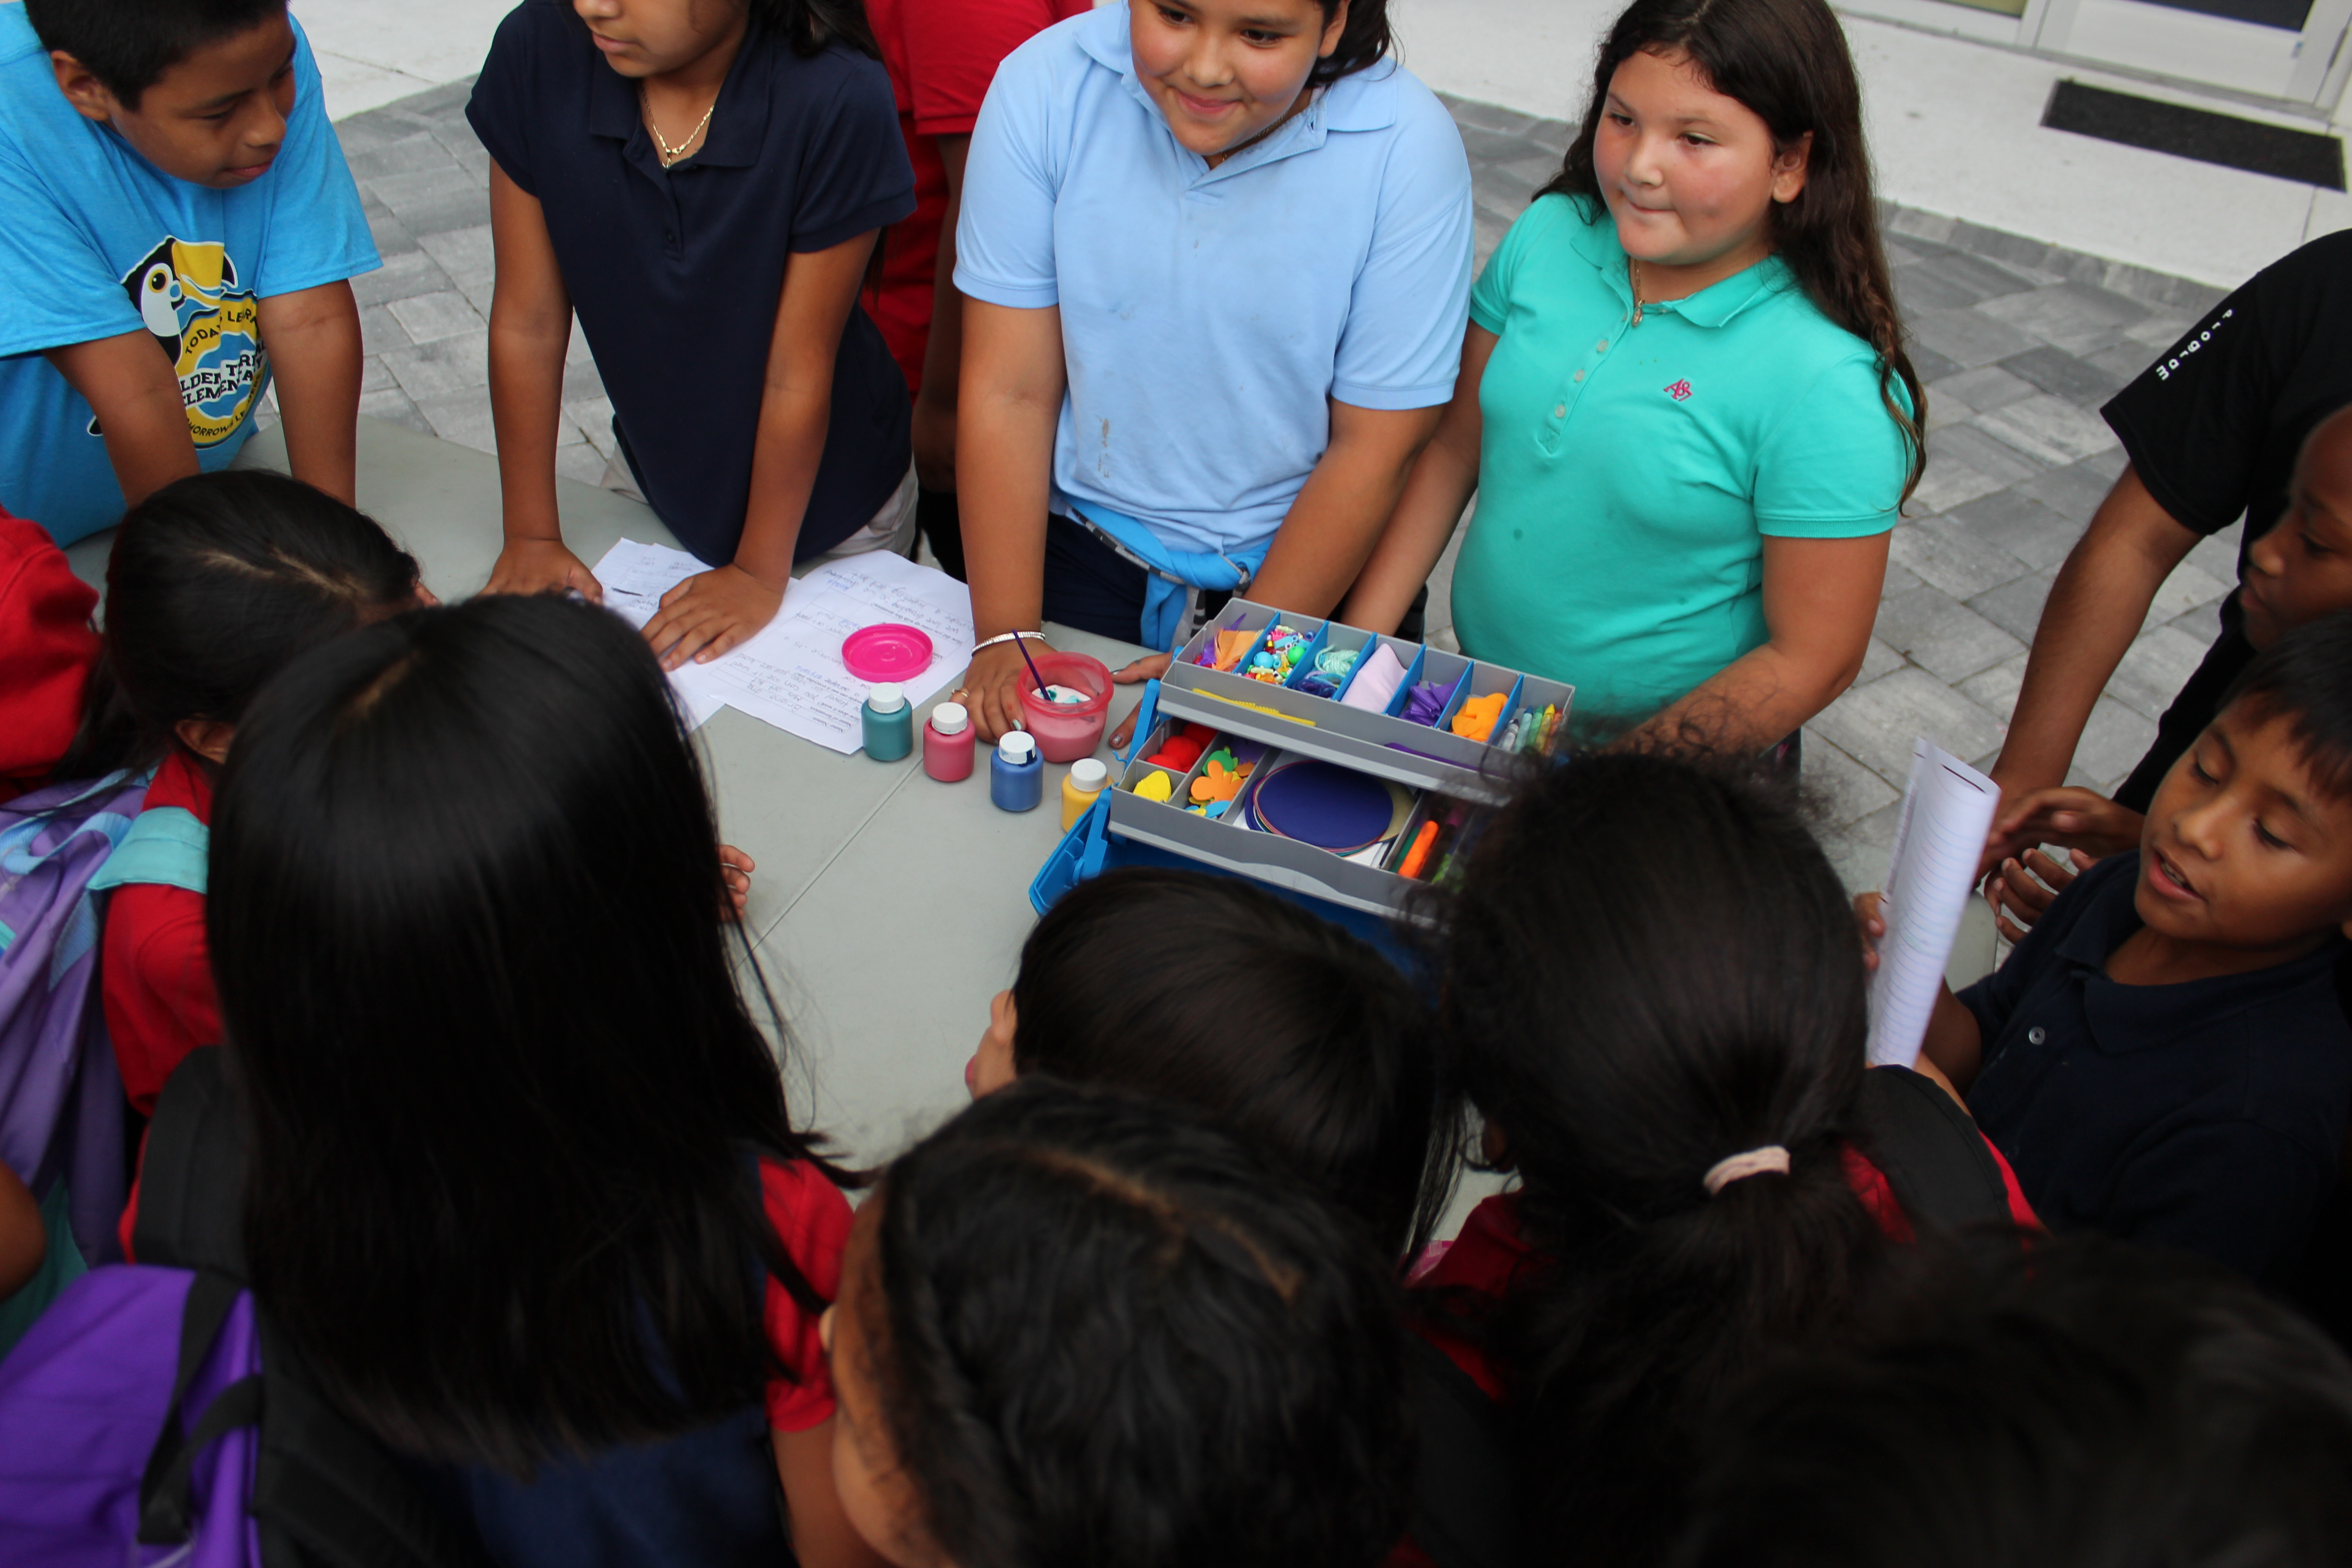 girls showing off their art kit invention